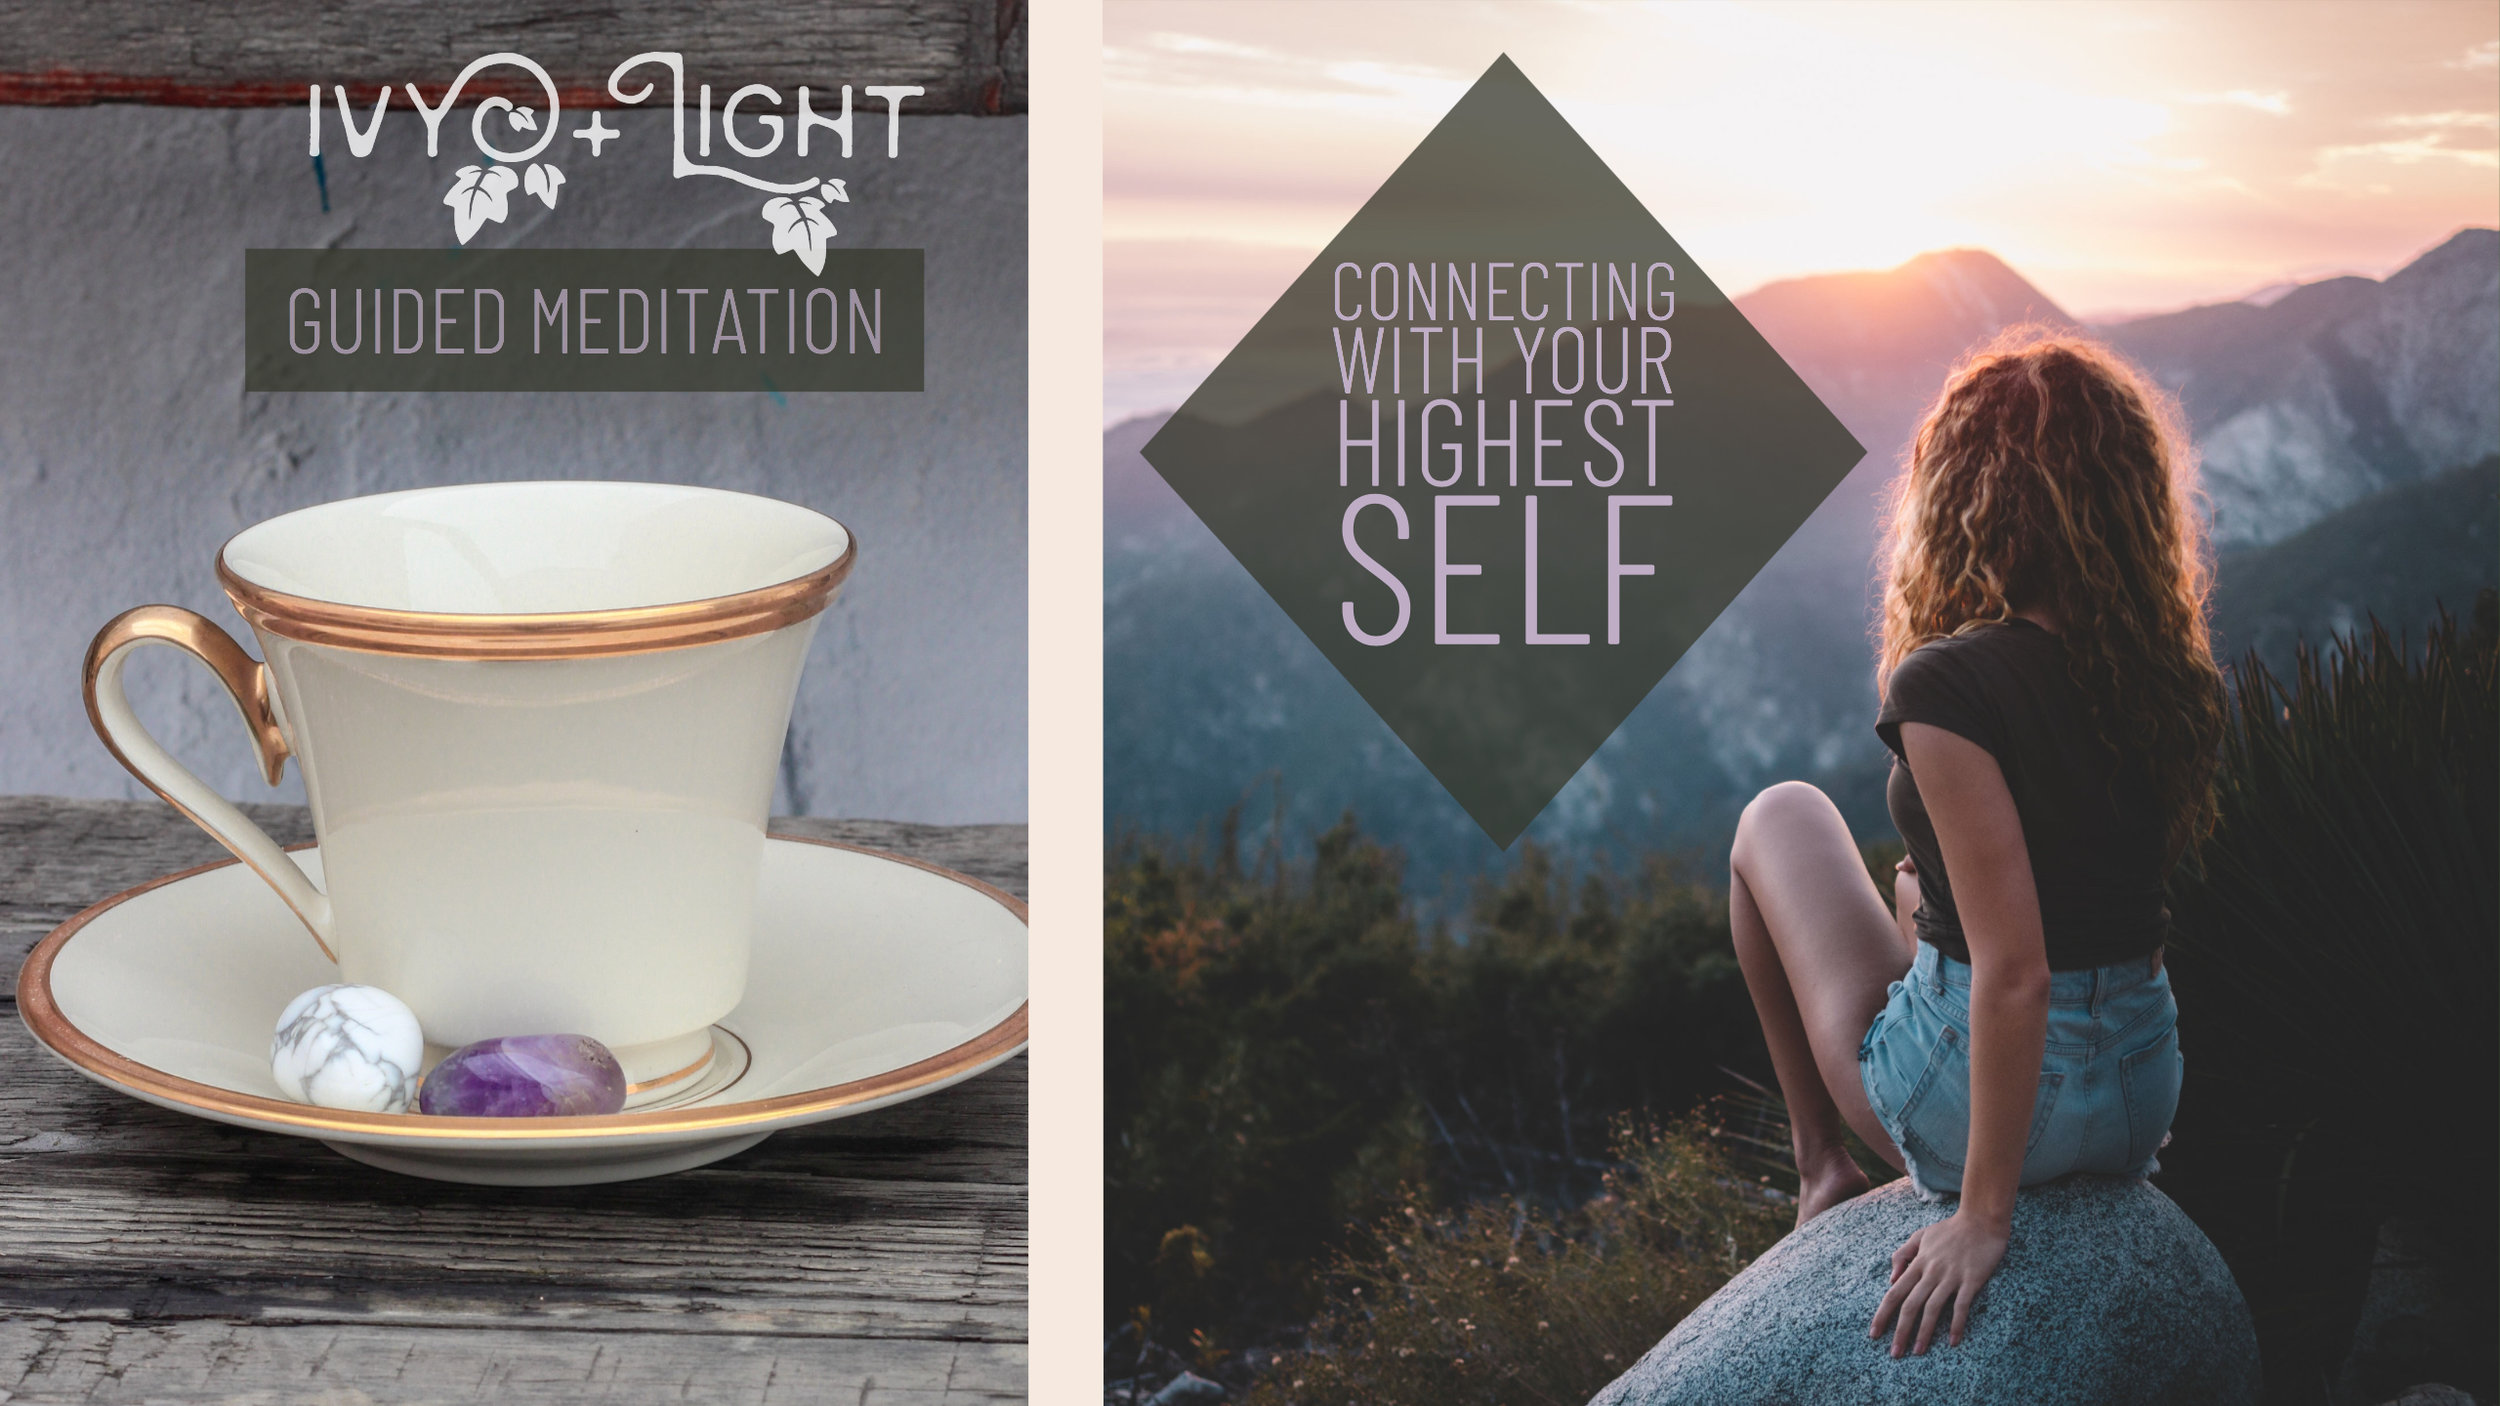 Experience this powerful Highest-Self-Connection through our Guided Meditation.